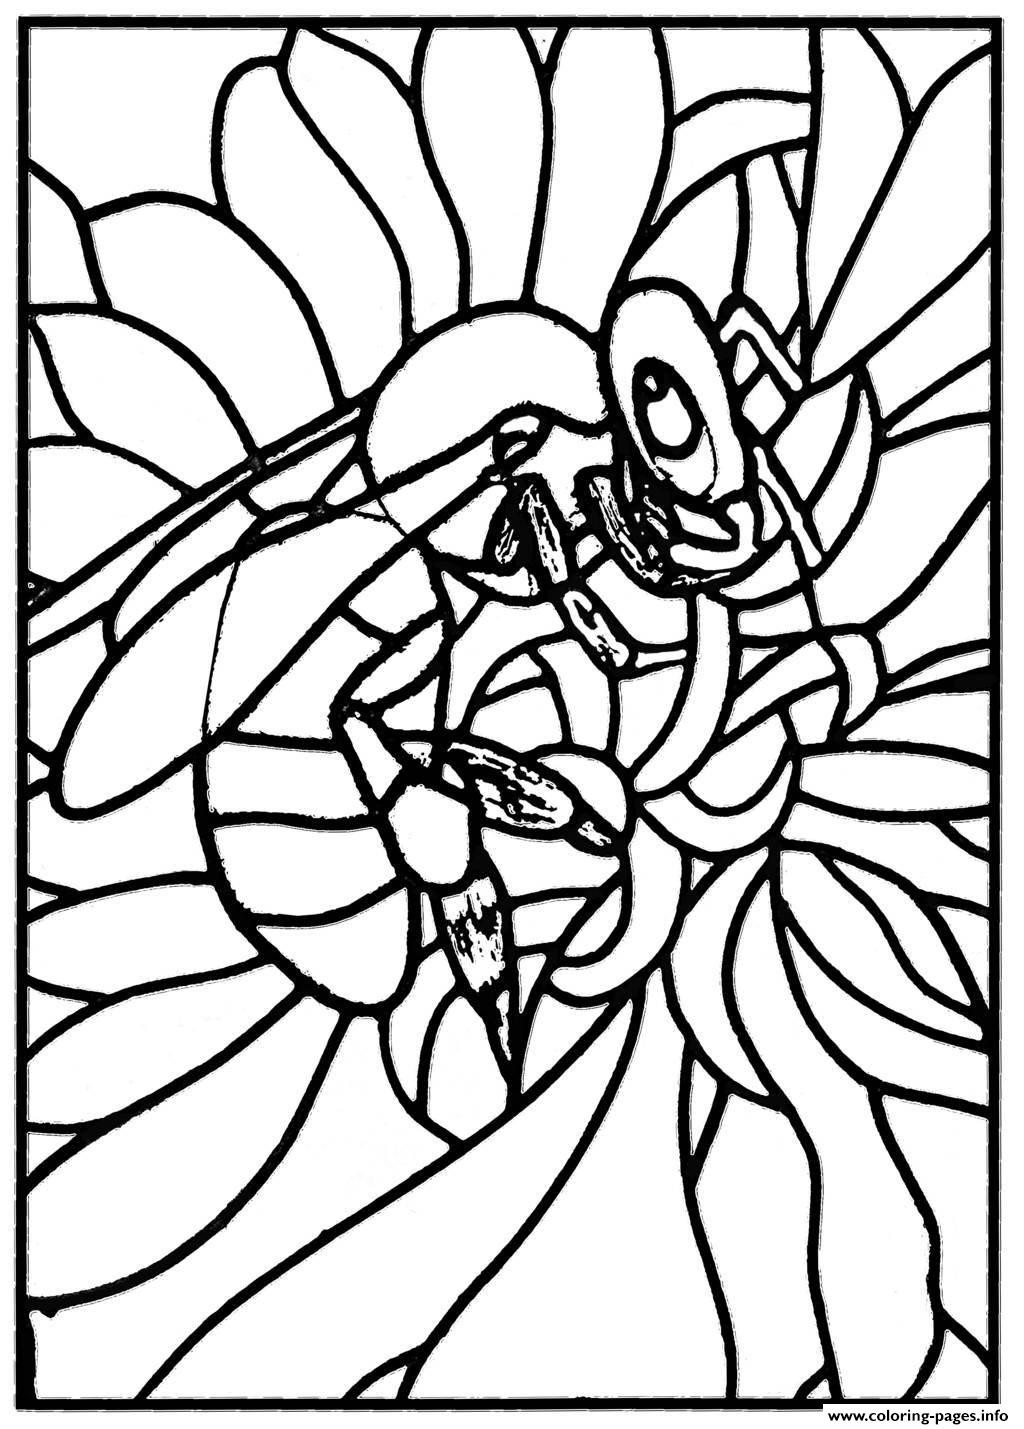 Best ideas about Stained Glass Free Coloring Pages . Save or Pin Stained Glass Coloring Pages coloringsuite Now.